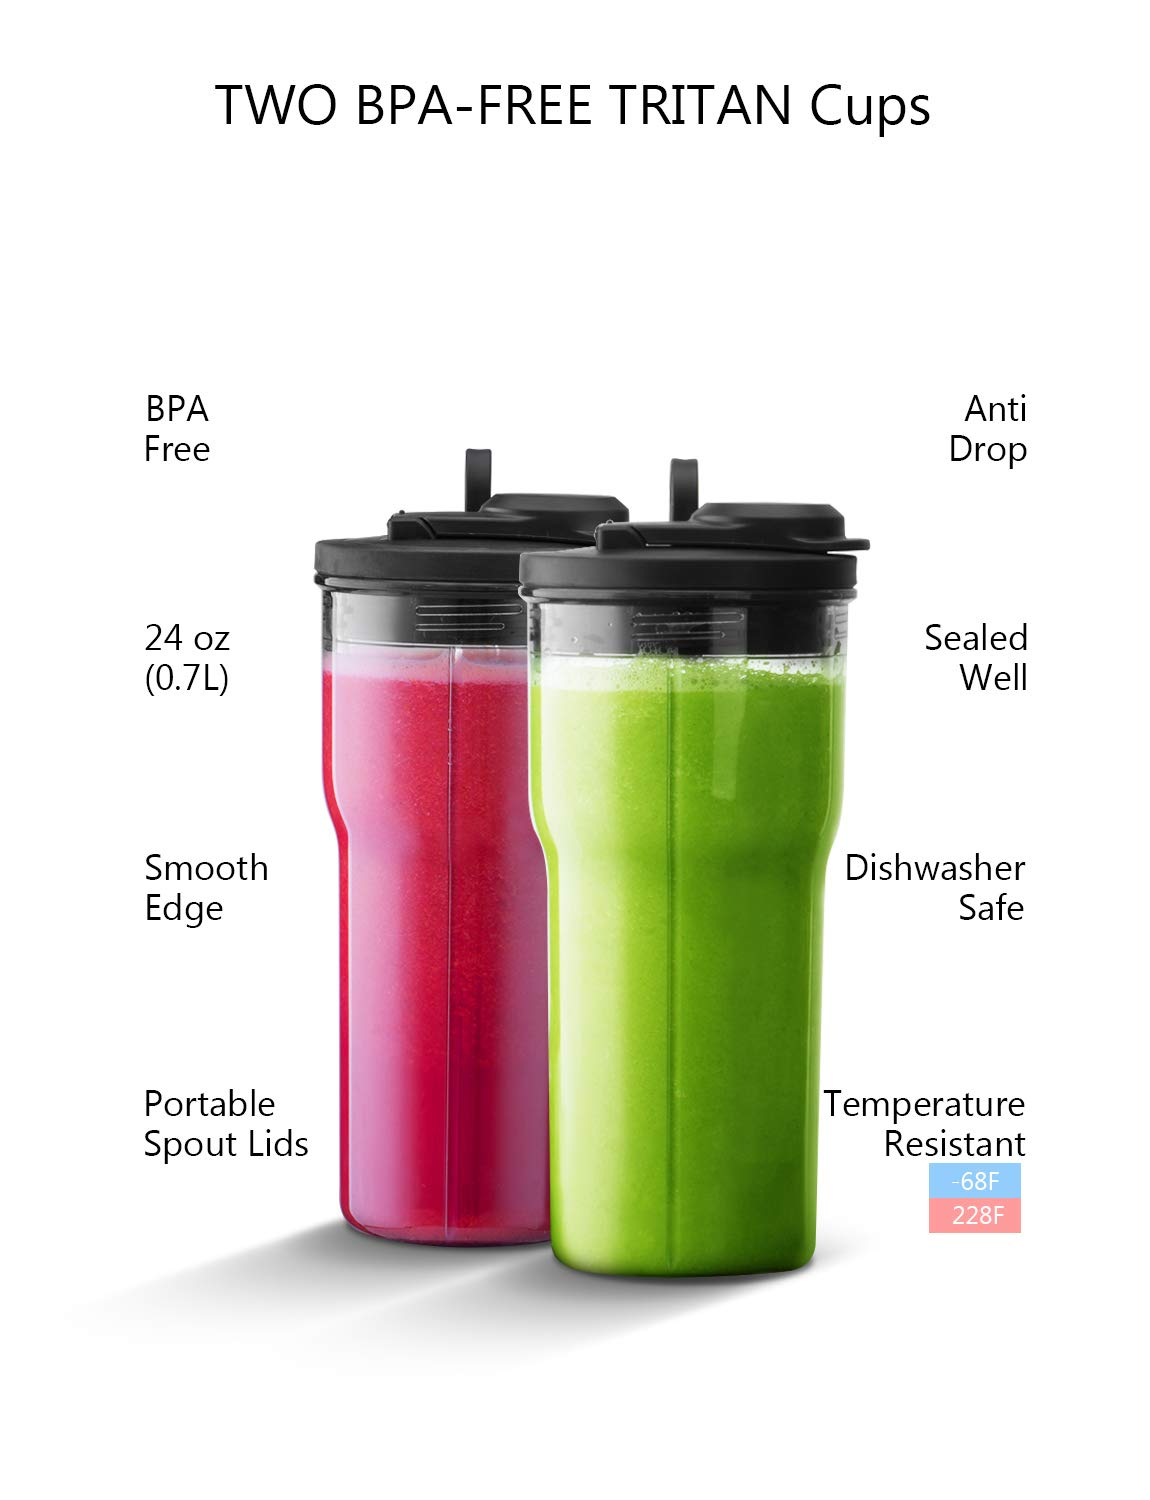 Smoothie Blender 1500W, Willsence Personal blender for Shakes and Smoothies, NUTRI-IQ Intelligent identification of Food Hardness, 2 x 24 oz to-go Tritan Cups (BPA Free) with Spout Lids by Willsence (Image #7)